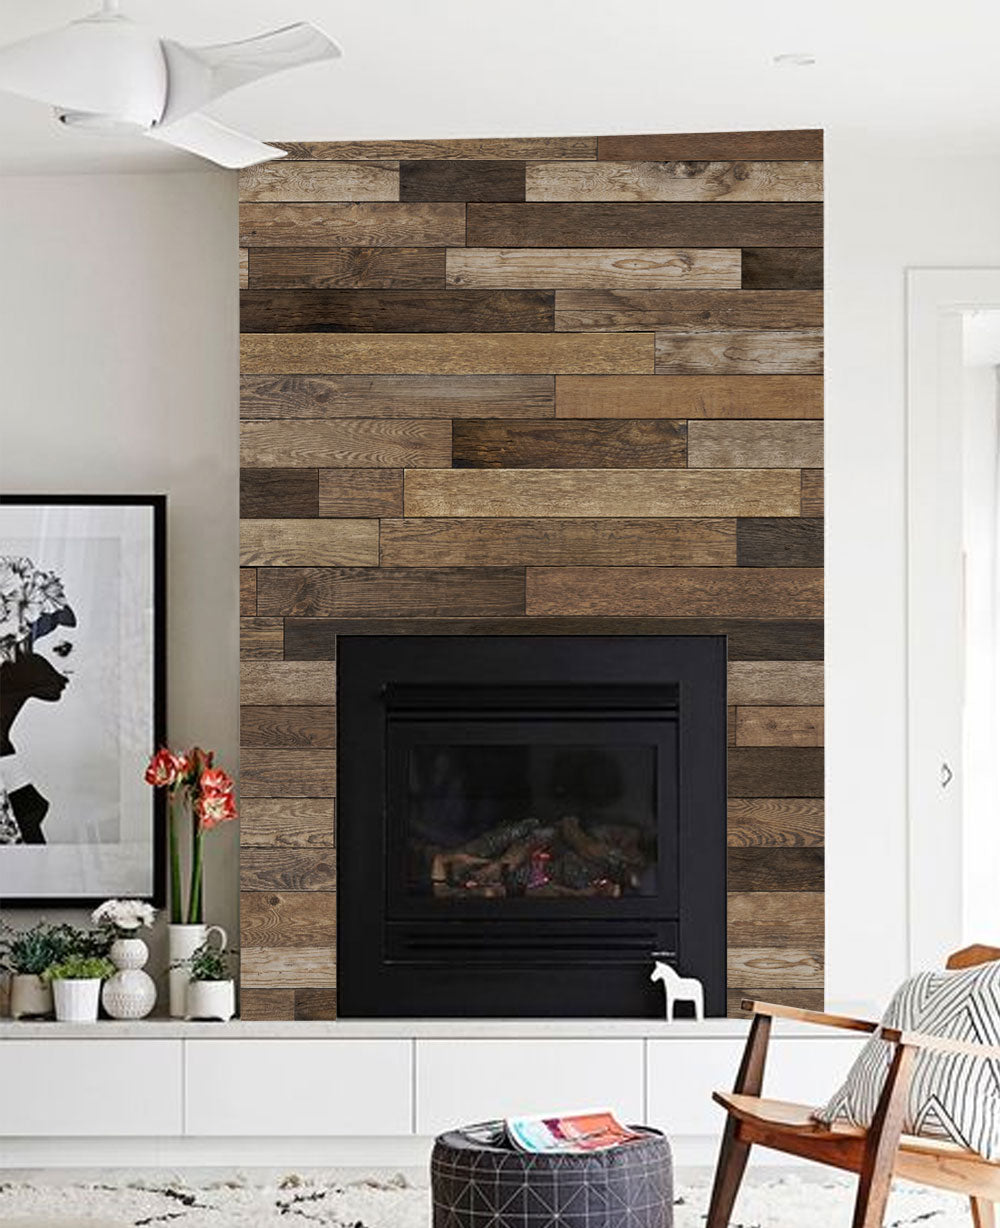 Reclaimed Wood Mural Wall Art Wallpaper - Peel and Stick